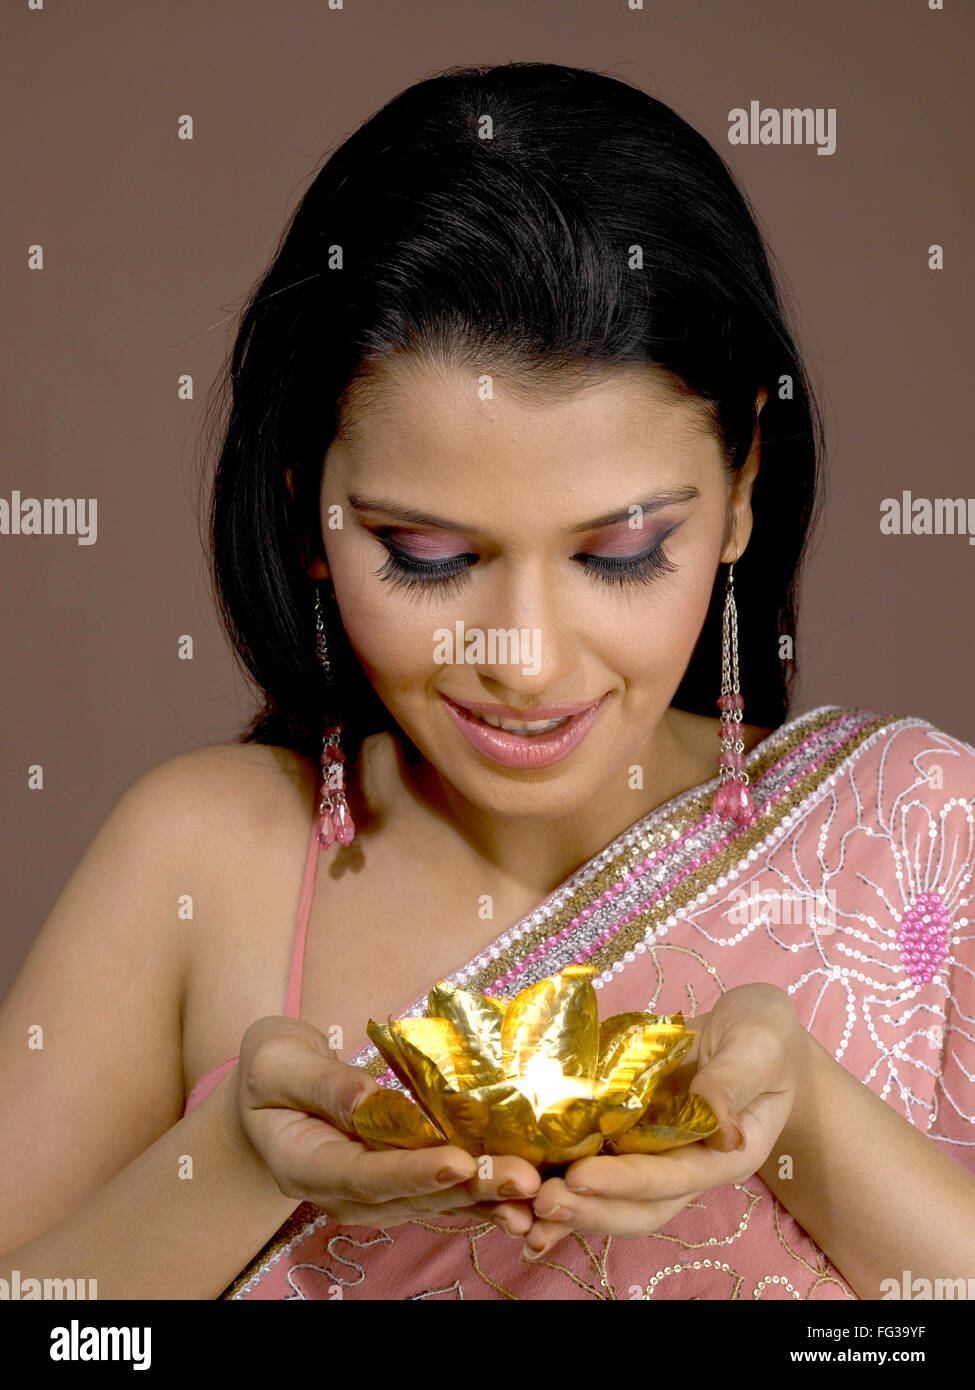 South Asian Indian donna sorridente e di colore dorato diya su mano palme signor # 702 Foto Stock